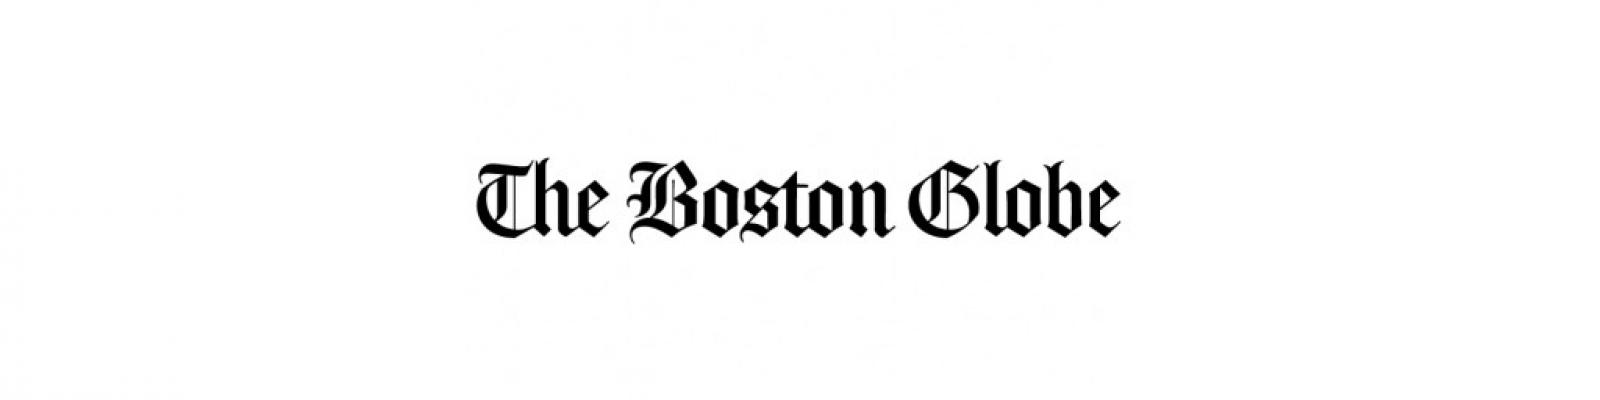 Boston Globe Quotes EWI's Greg Austin on Clean Energy in China